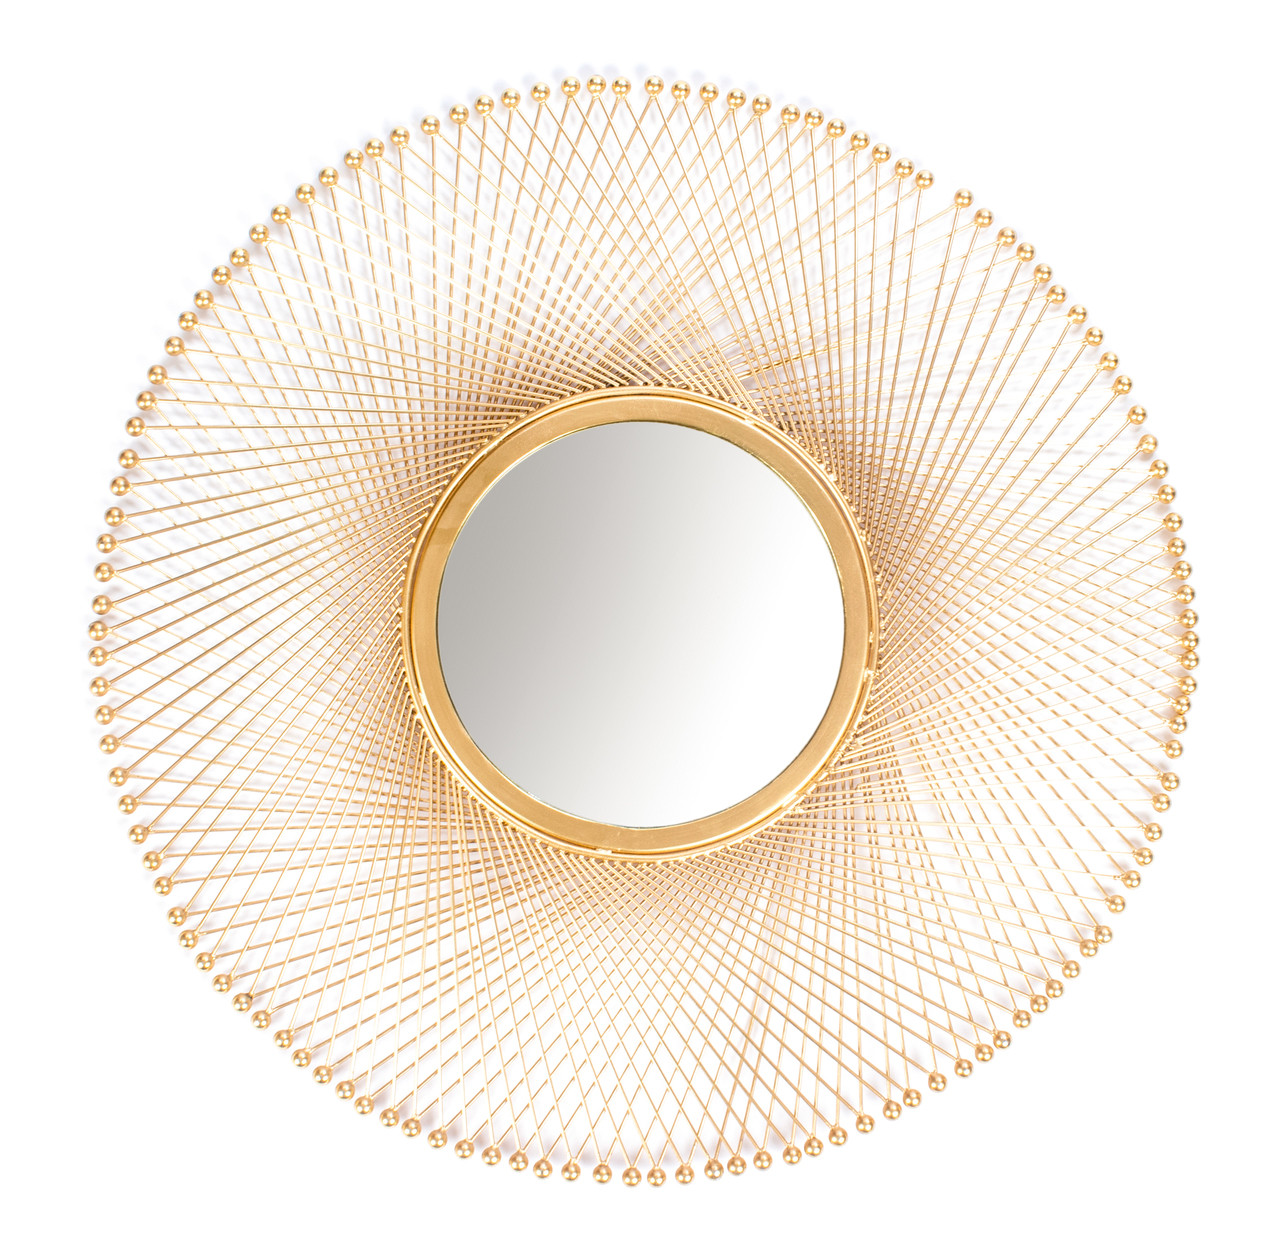 Red Fig Home Wall Mirror Décor Decorative Handcrafted Gold Metal Wire Frame Small Round Mounted Mirror For Hallway Bedroom Bathroom Living Room